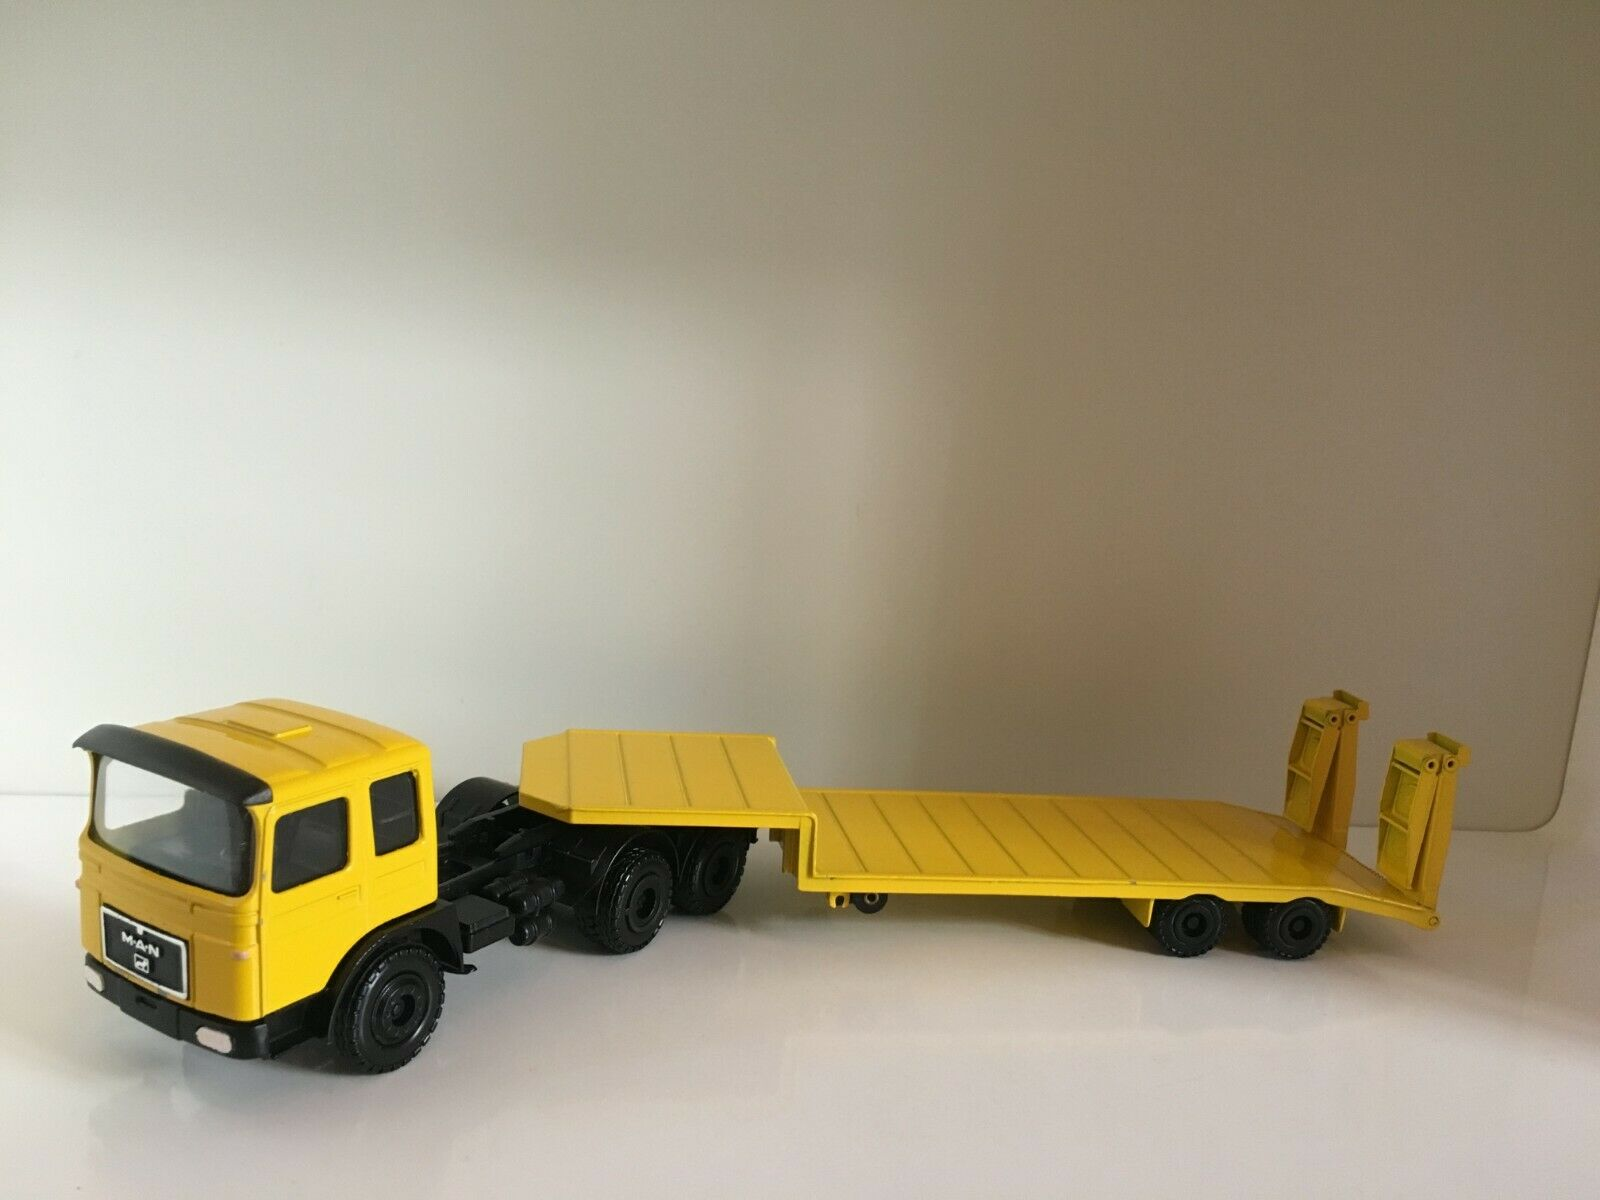 Man F8 3-axle versions with goldhofer Low Loader by Conrad 3125 1 50